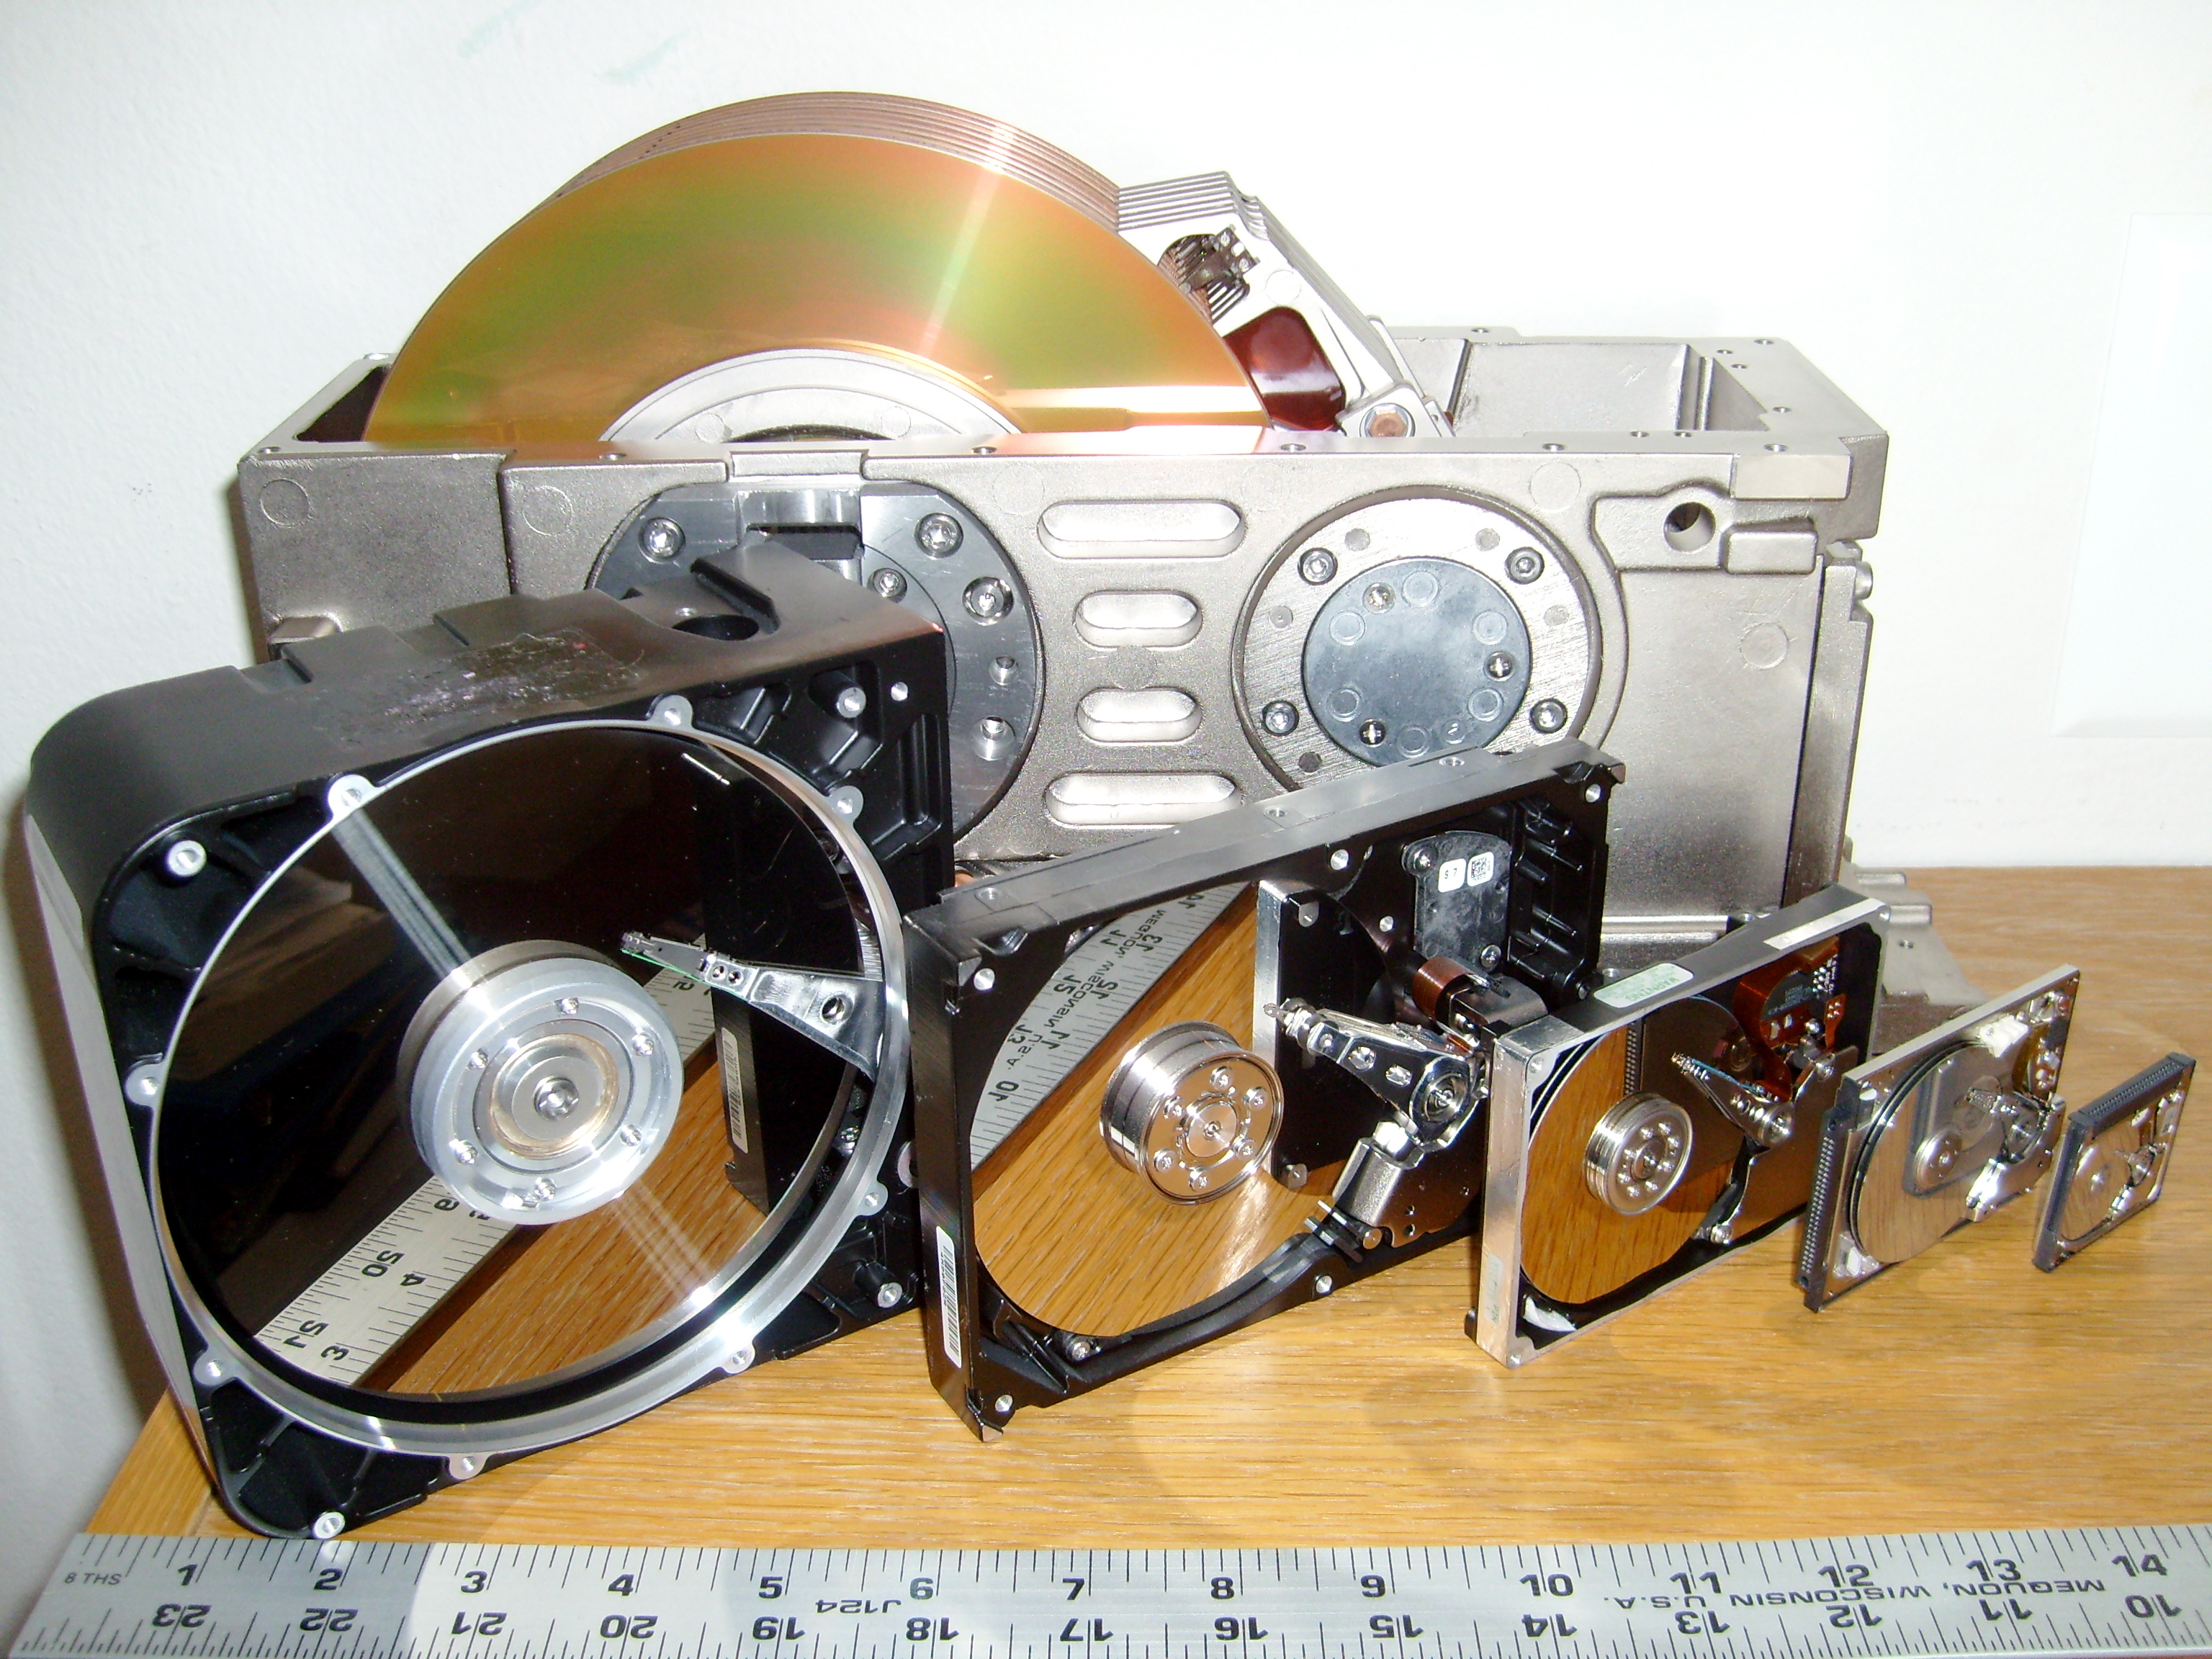 Hard Disk Drives Have Made Precision Engineering Commonplace